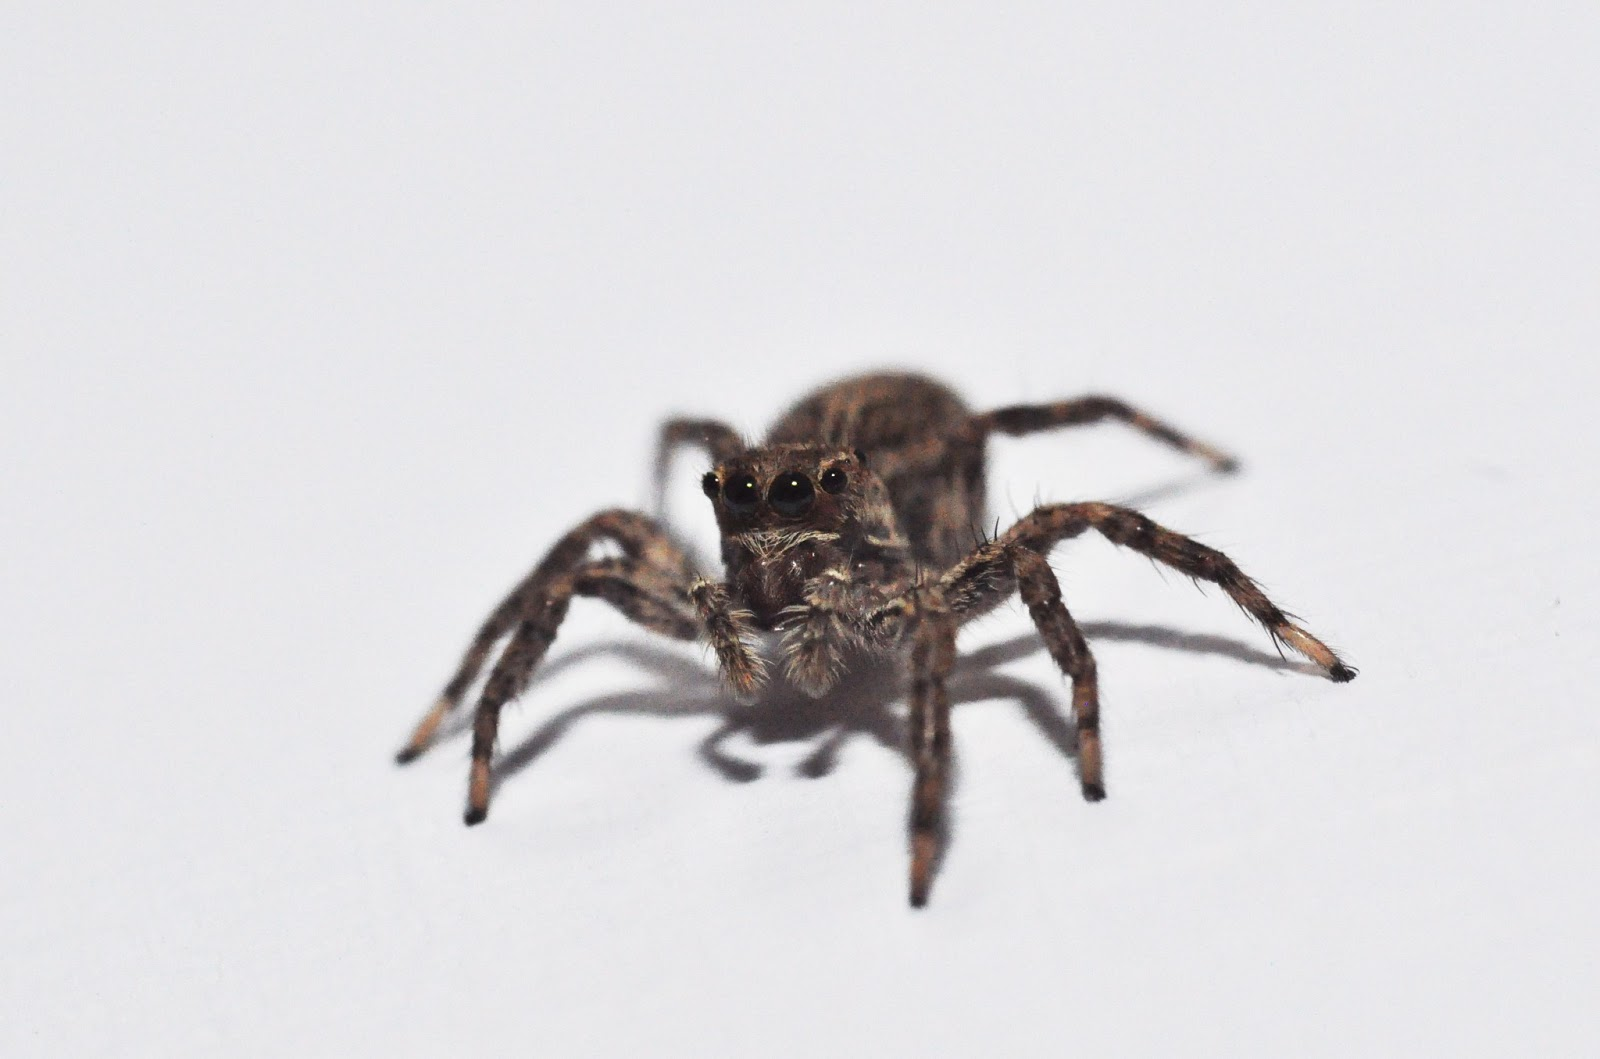 jumping spiders are active hunters often seen during the day walking up and down walls in houses as well as in the countryside